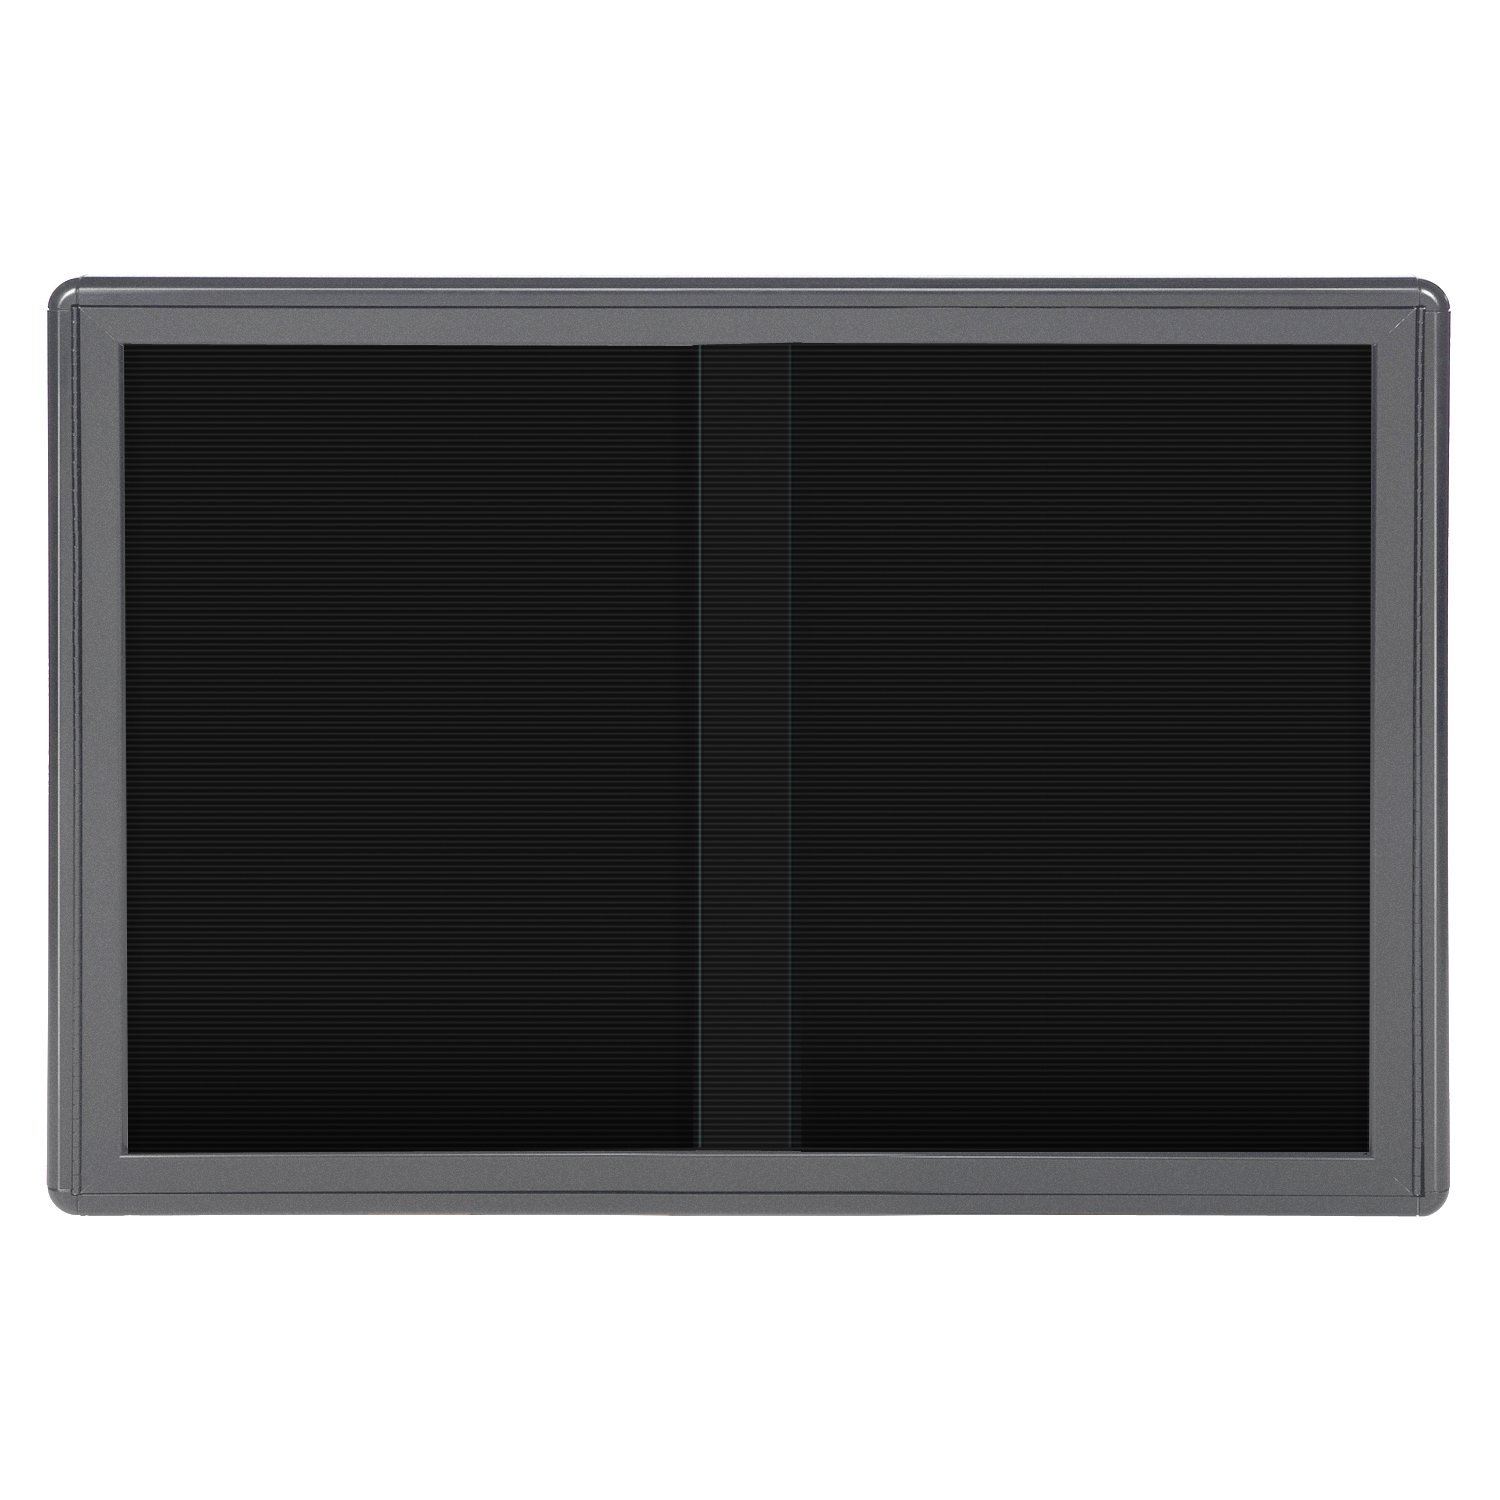 34''x47'' 2-Sliding Doors Ovation Letter Board, Black Fabric, Gray Frame